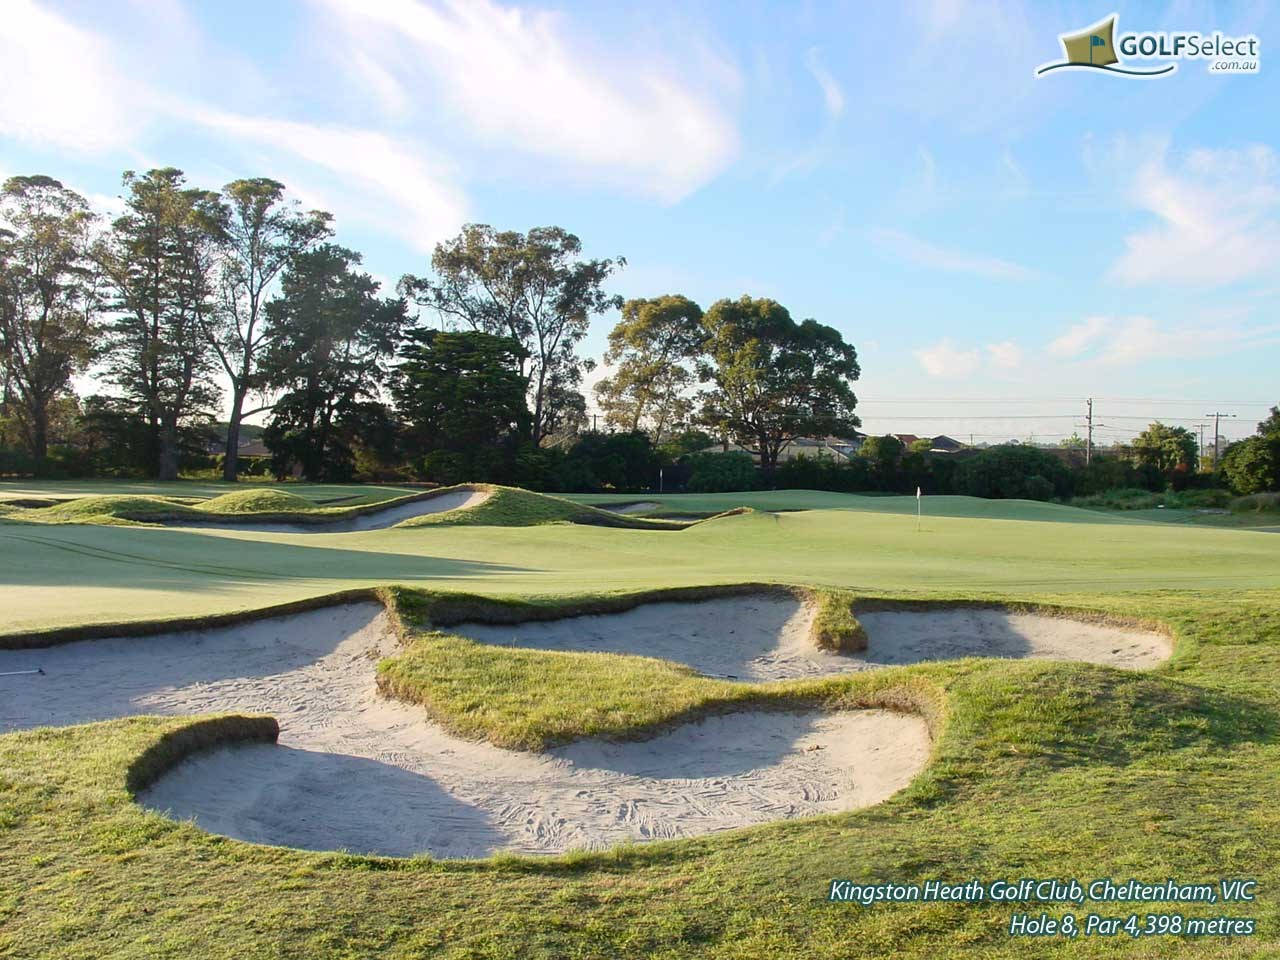 Kingston Heath Golf Club Hole 8